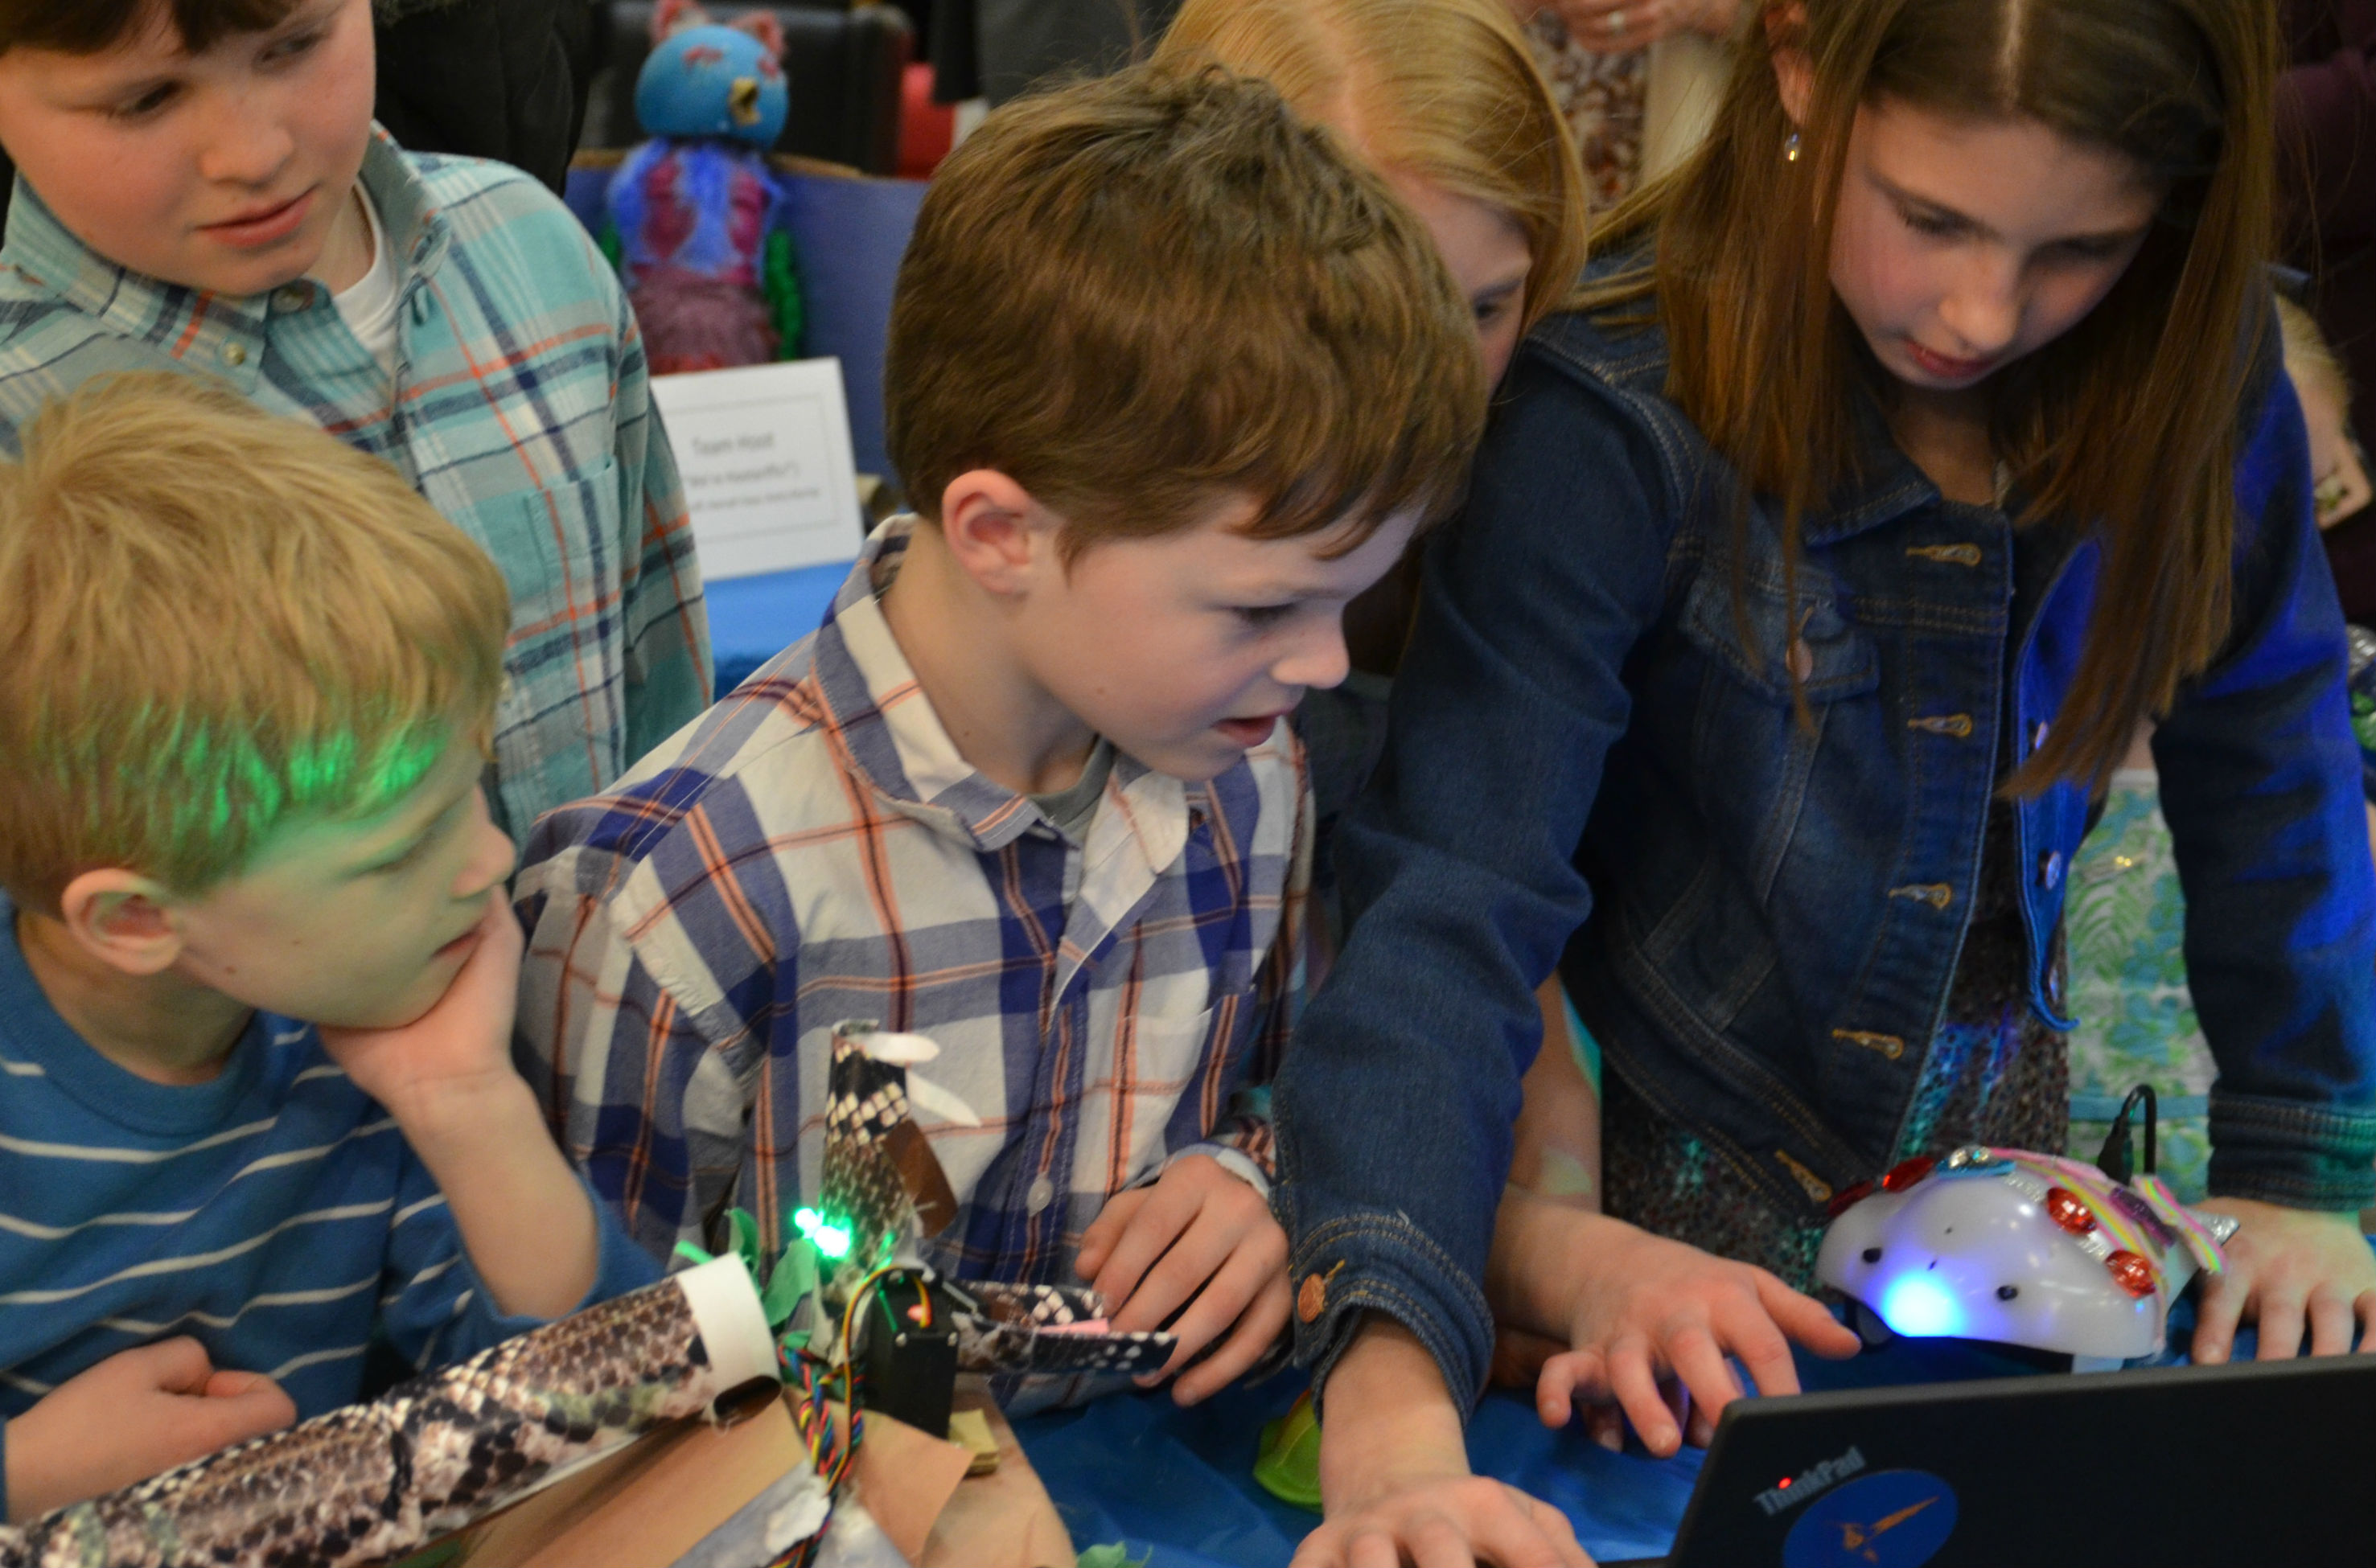 Downingtown Educational Foundation sponsored class in robotics for young people